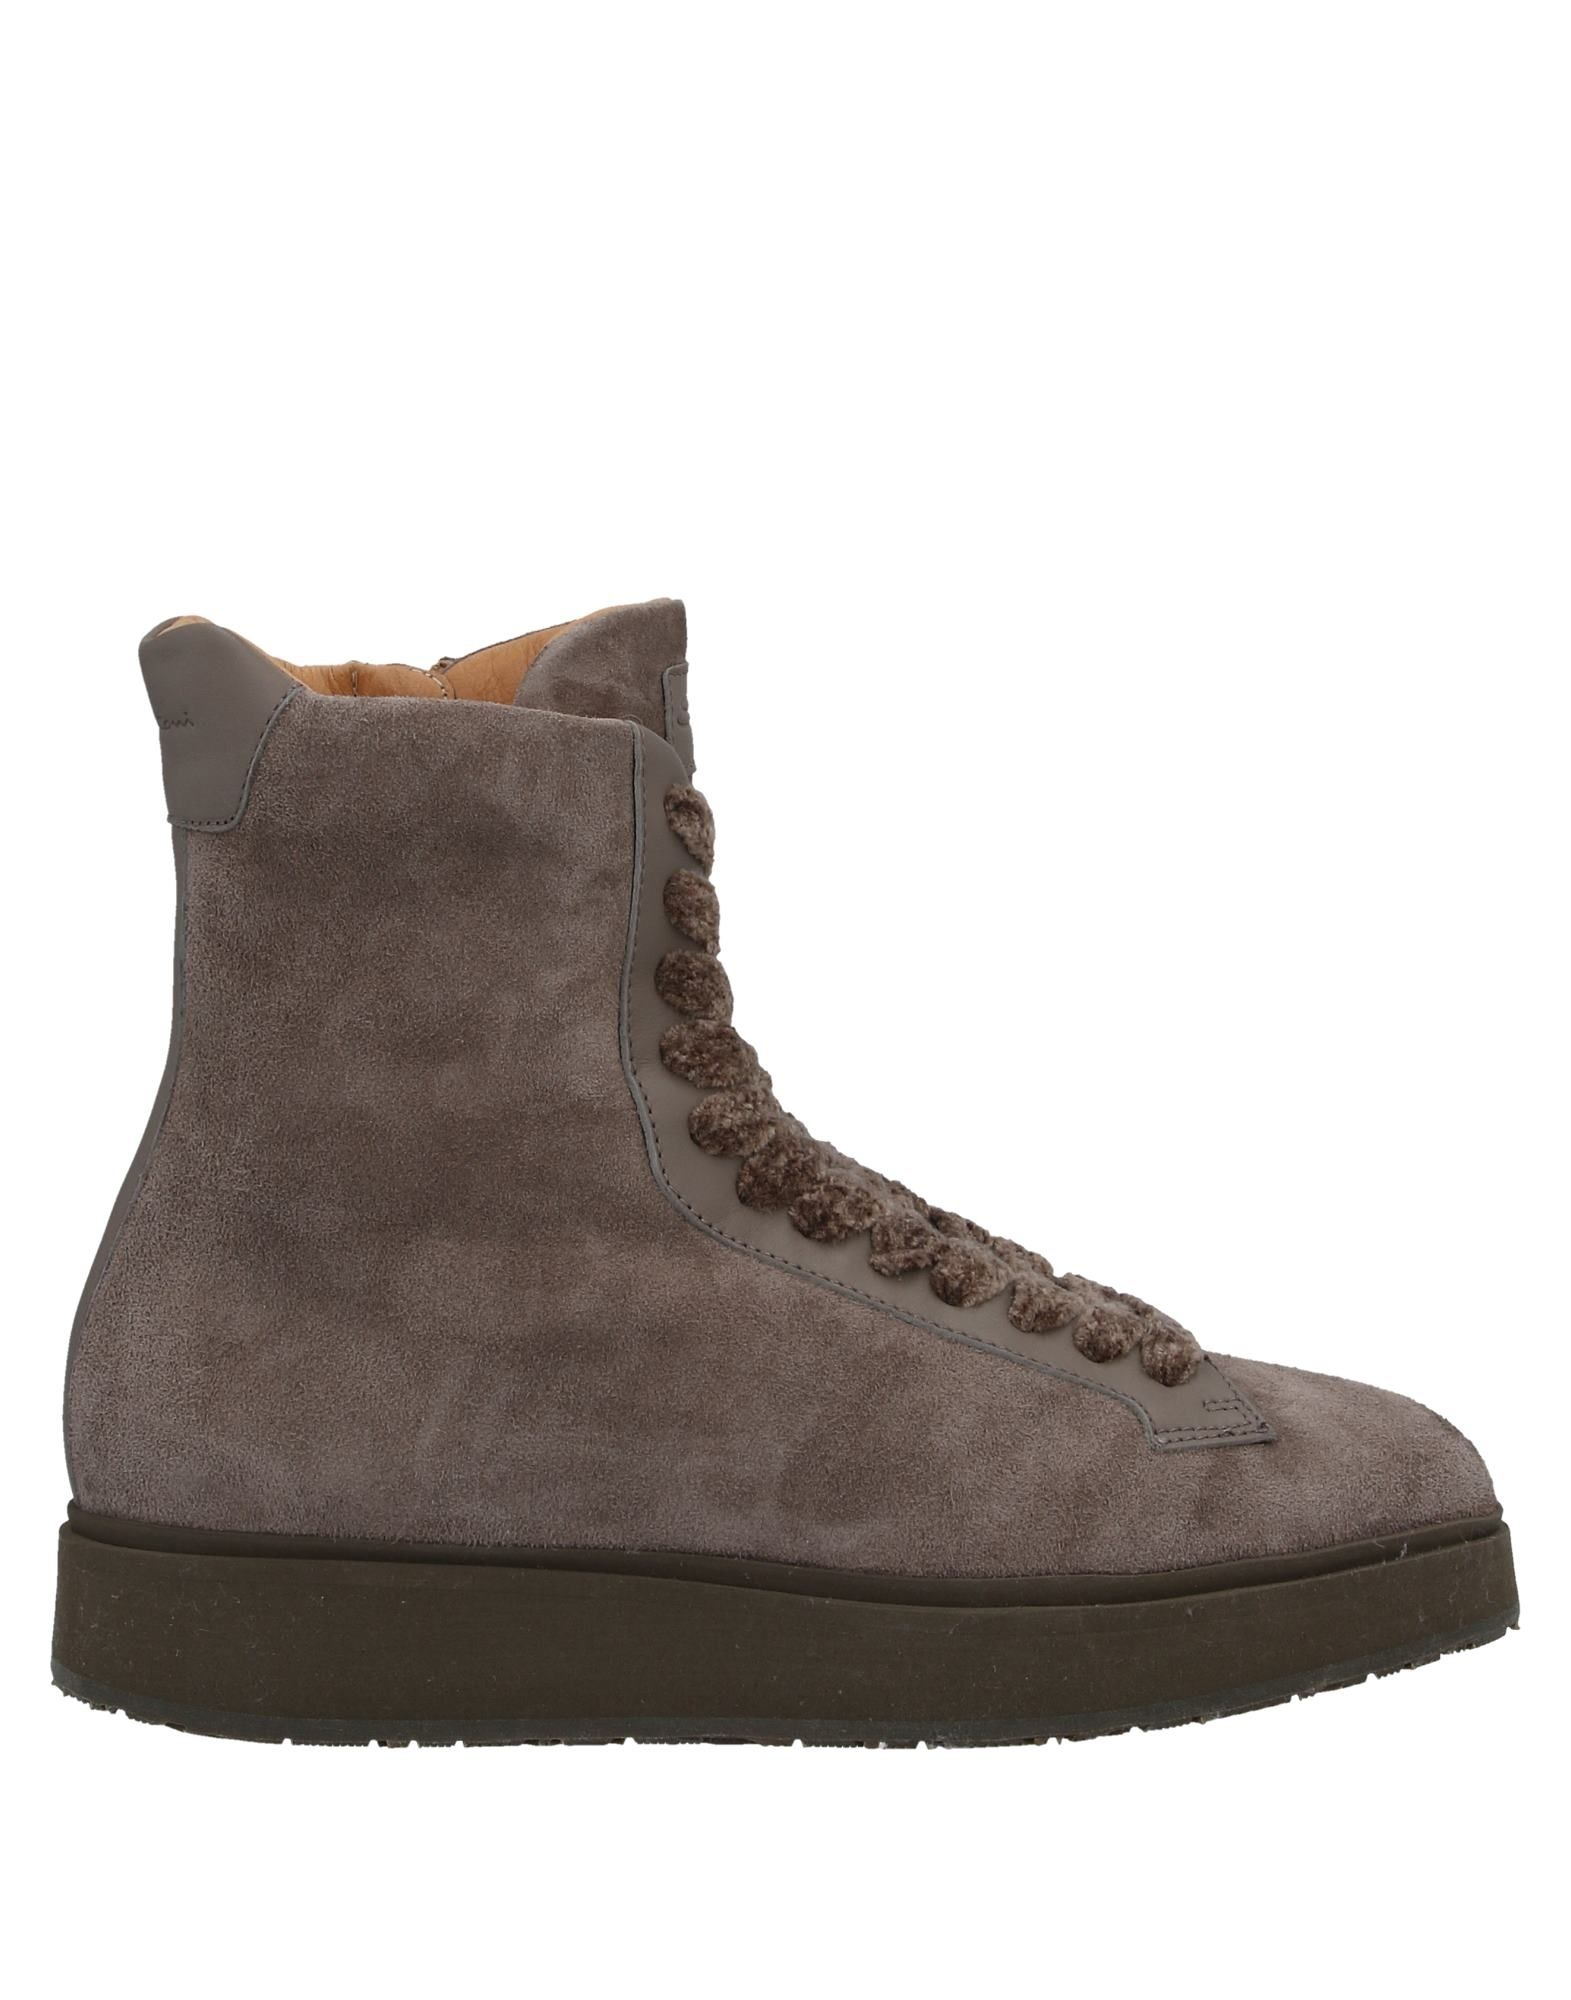 SANTONI Ankle boots. leather, suede effect, logo, solid color, round toeline, zipper closure, wedge heel, leather lining, rubber cleated sole, contains non-textile parts of animal origin, large sized. Soft Leather